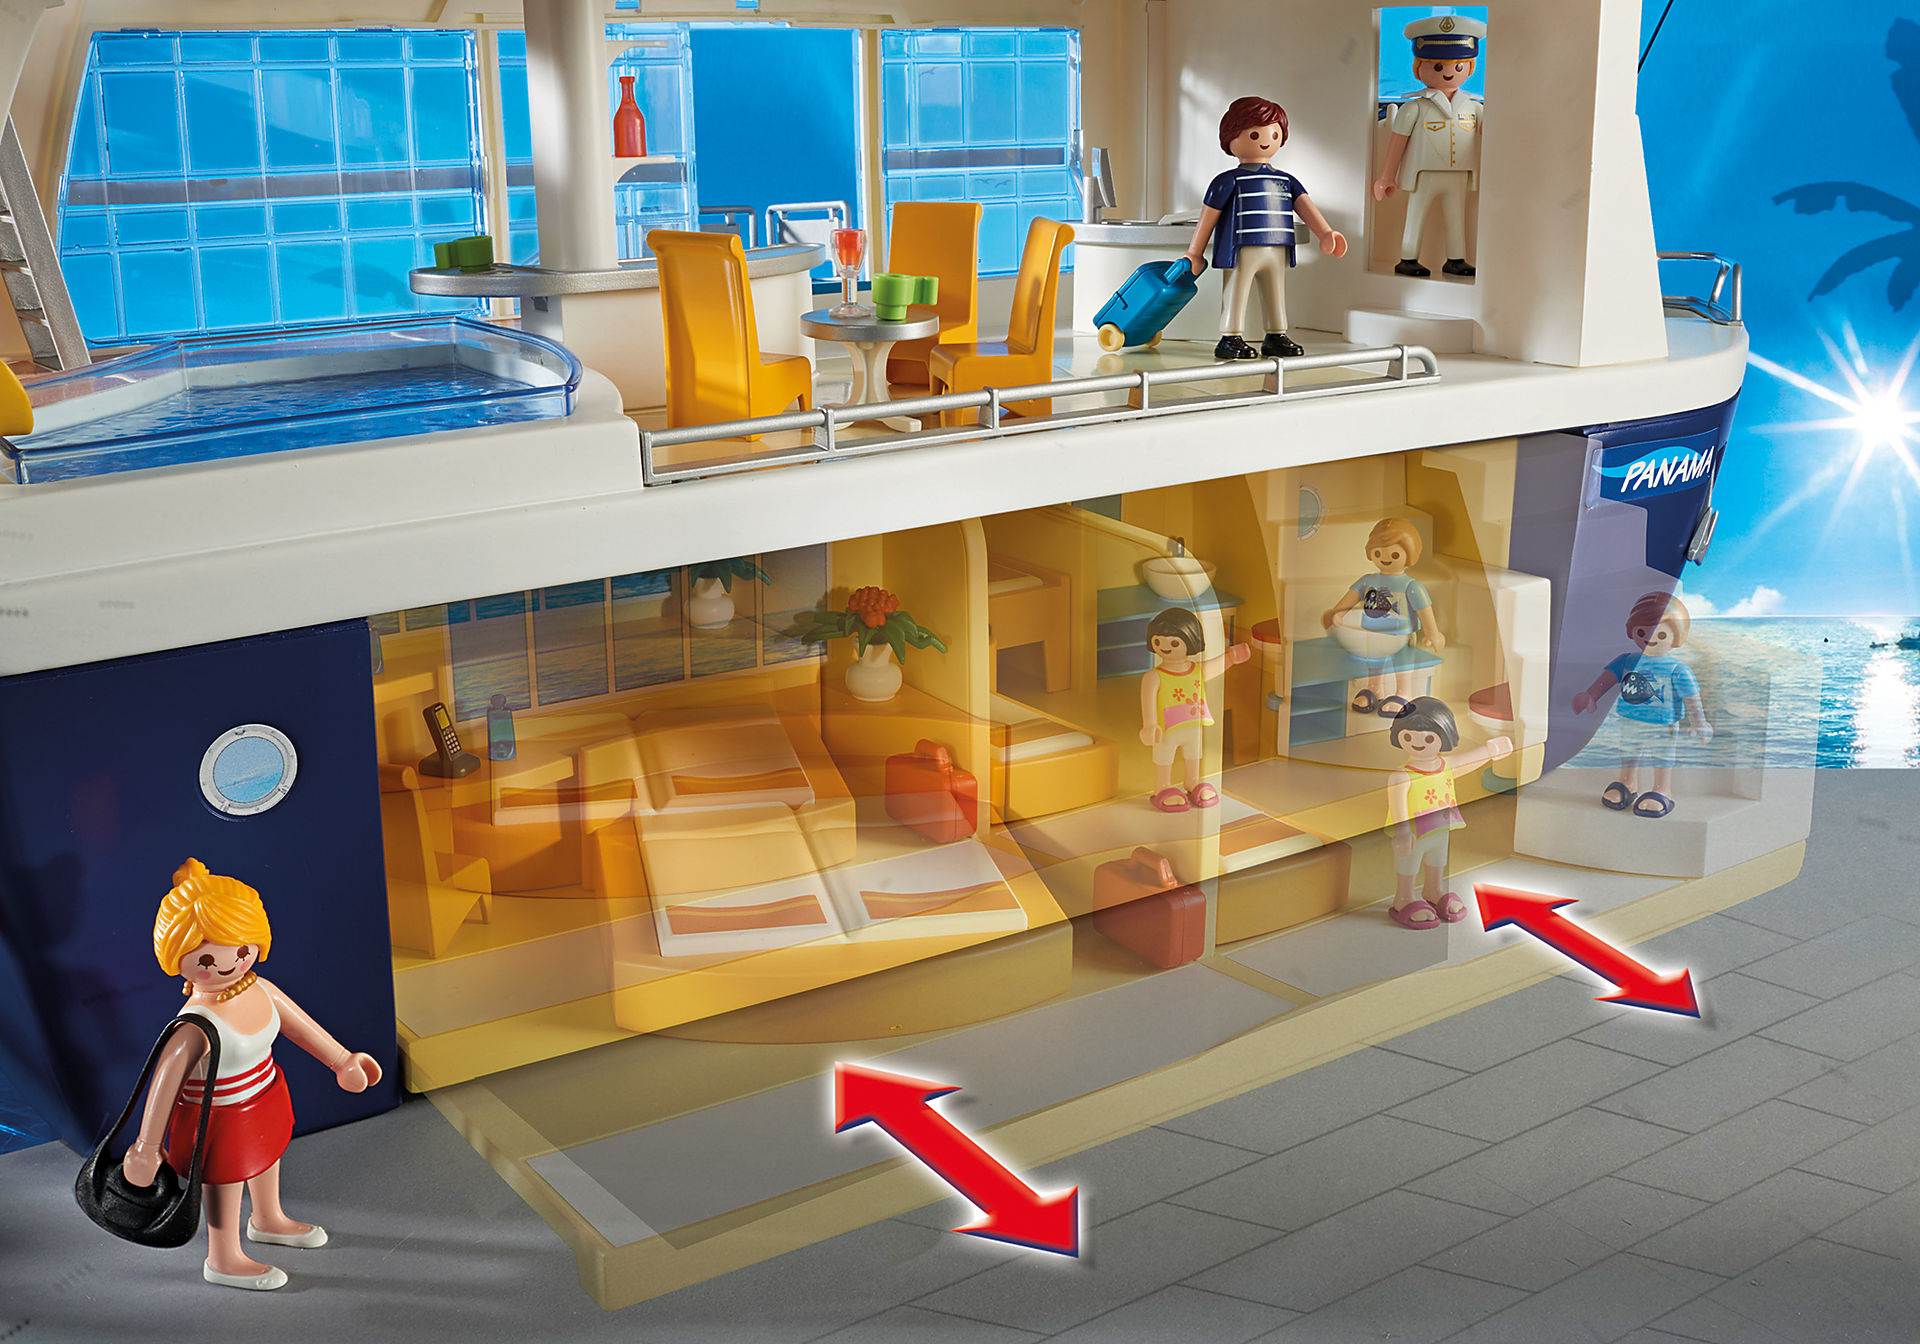 http://media.playmobil.com/i/playmobil/6978_product_extra1/Cruise Ship